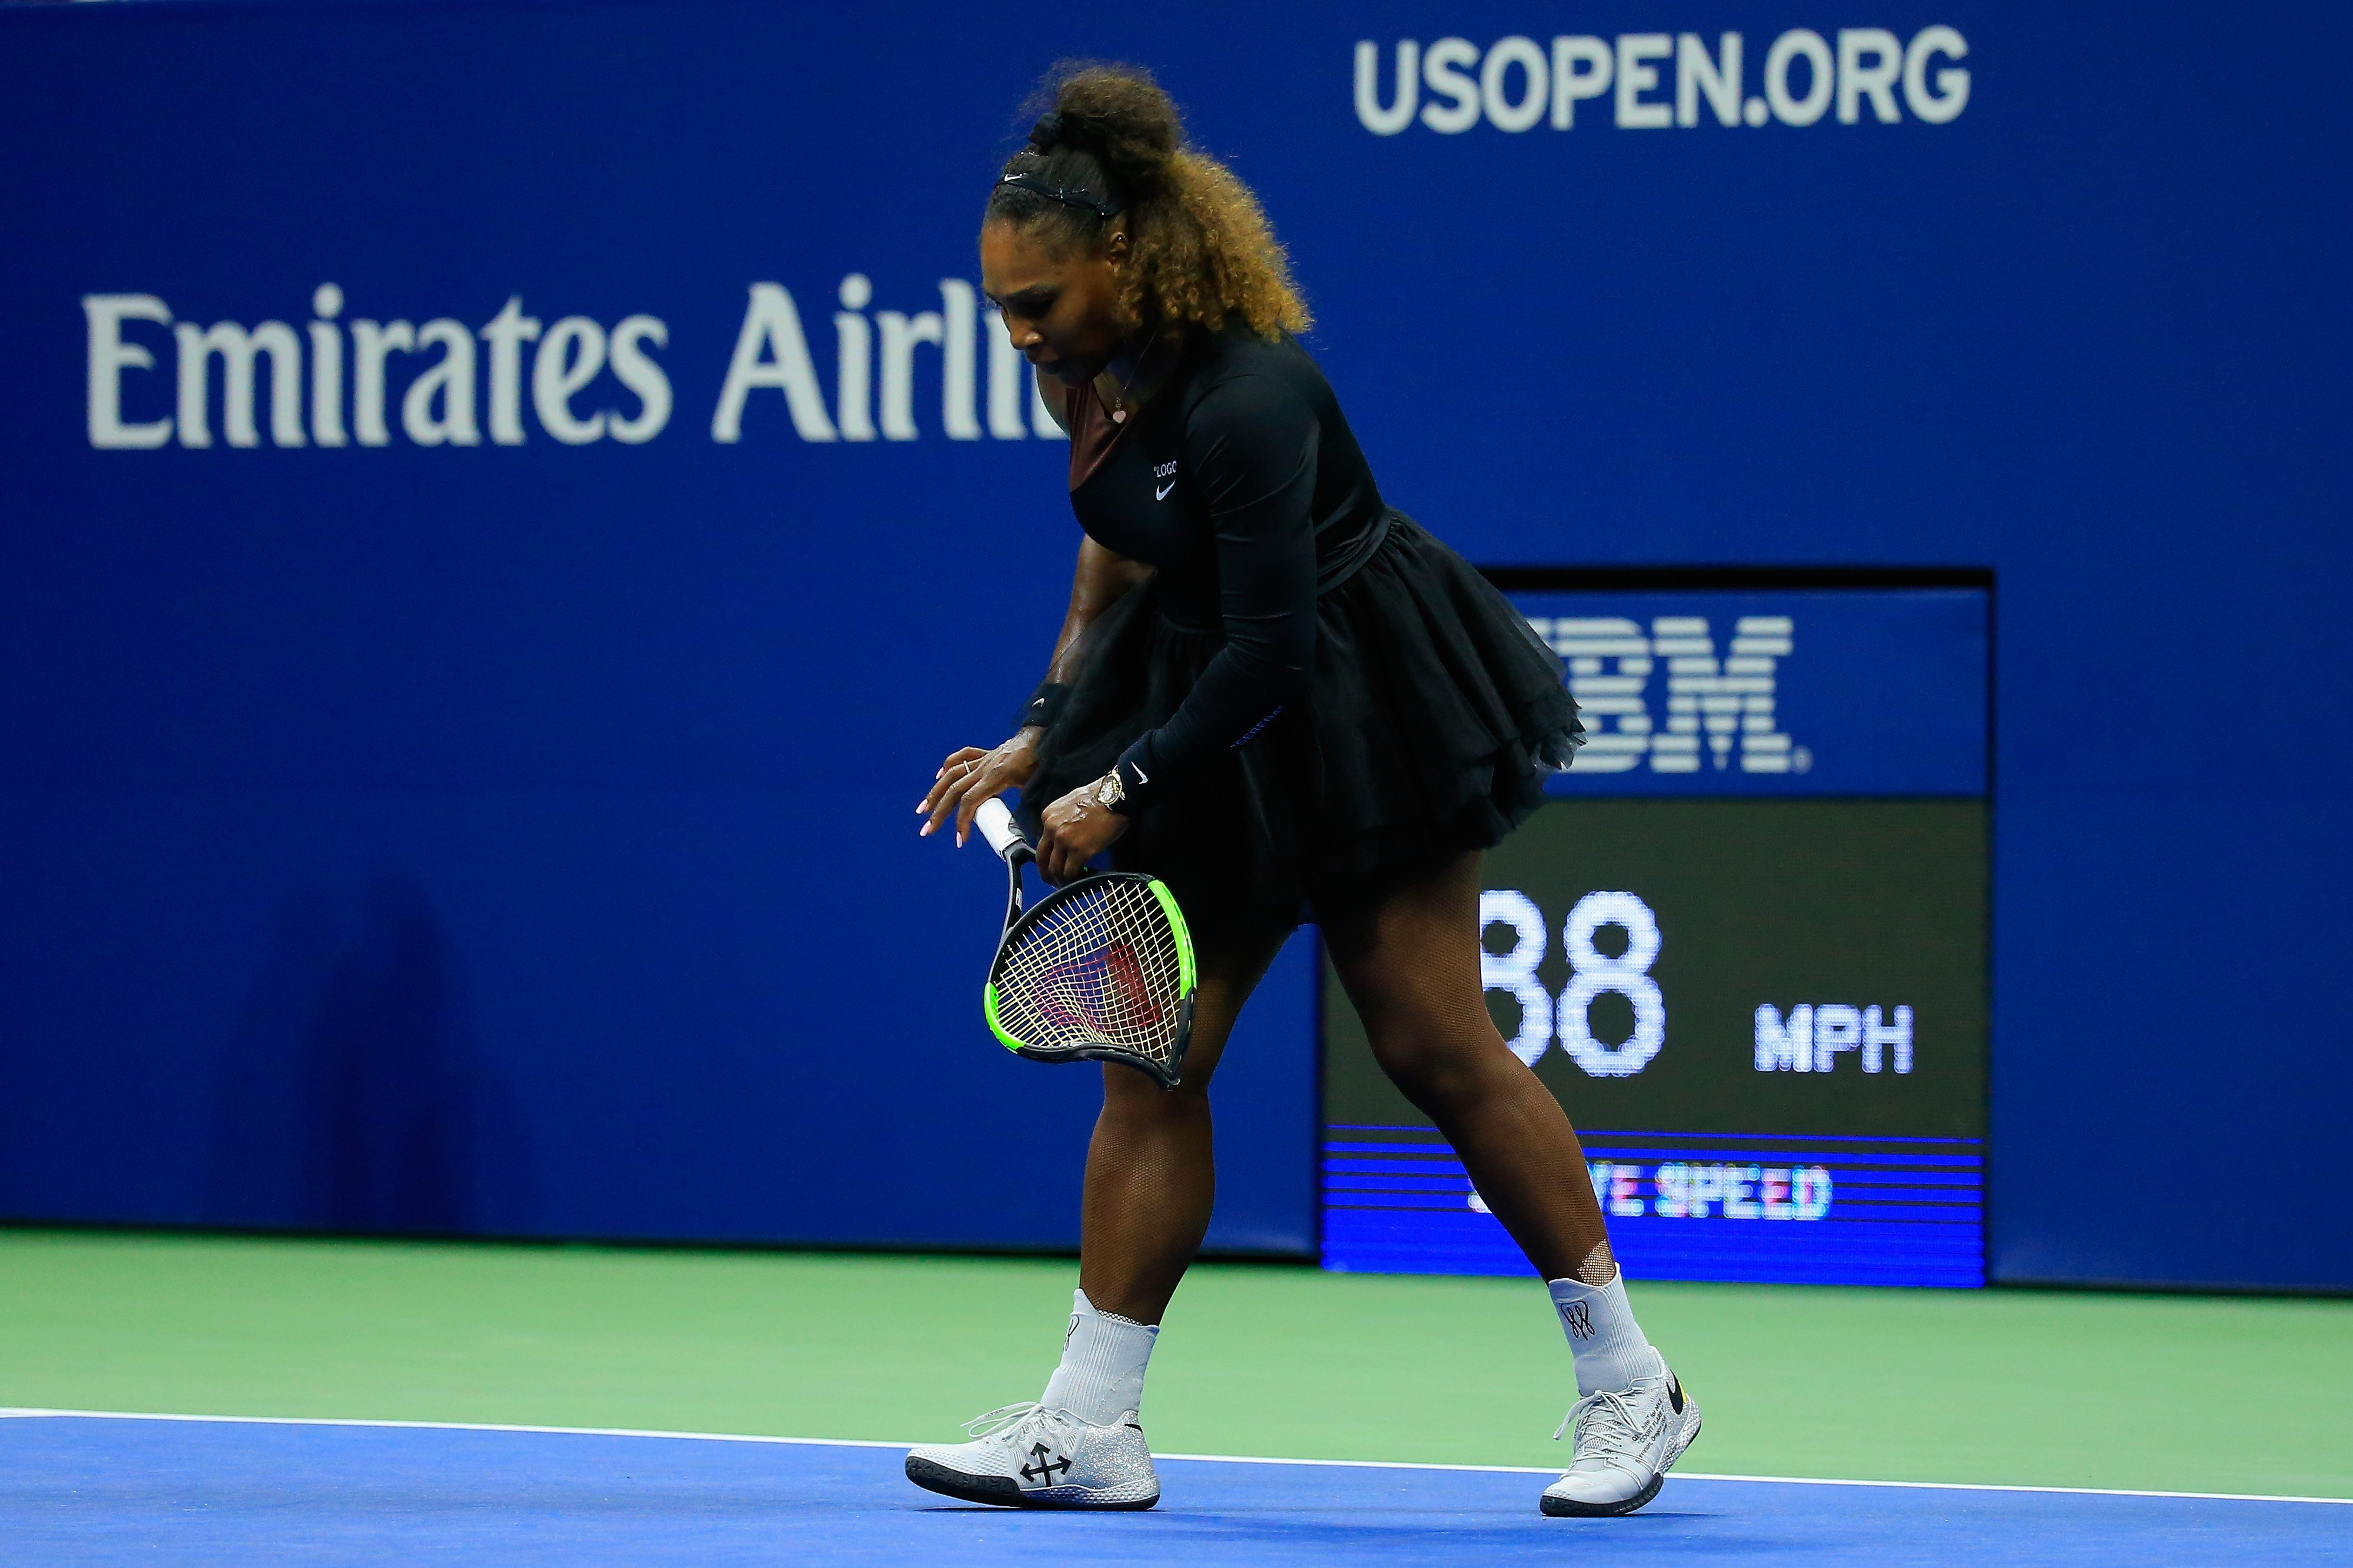 Serena Williams' smashed racket from the US Open sells for $20,910